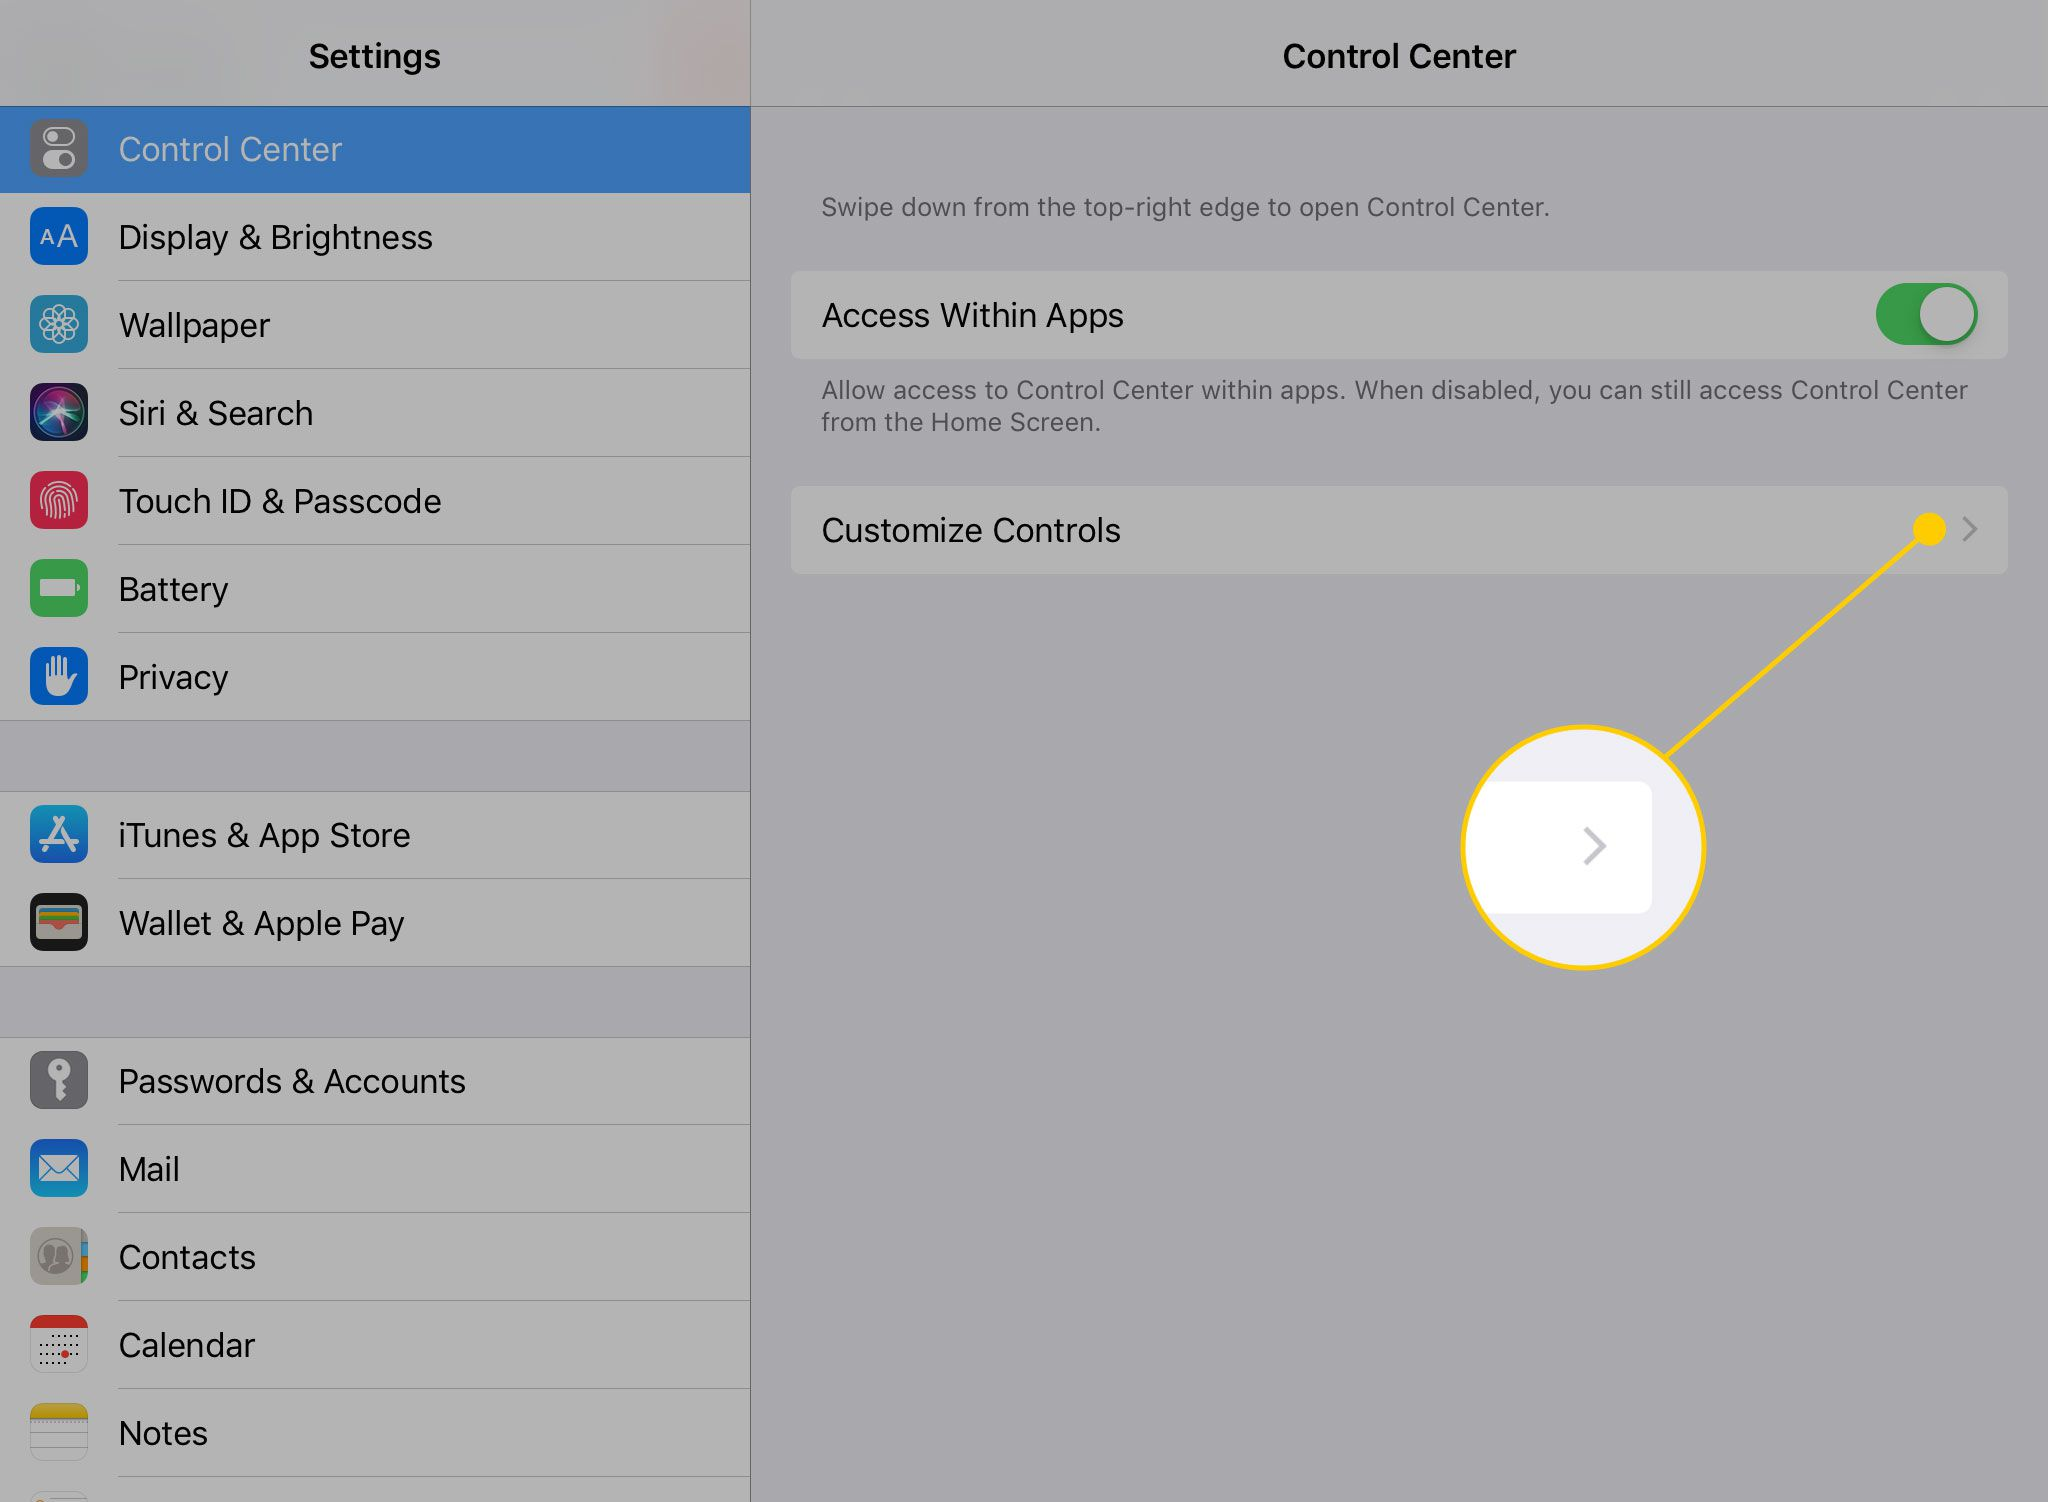 iPad Control Center settings with Customize Controls heading highlighted